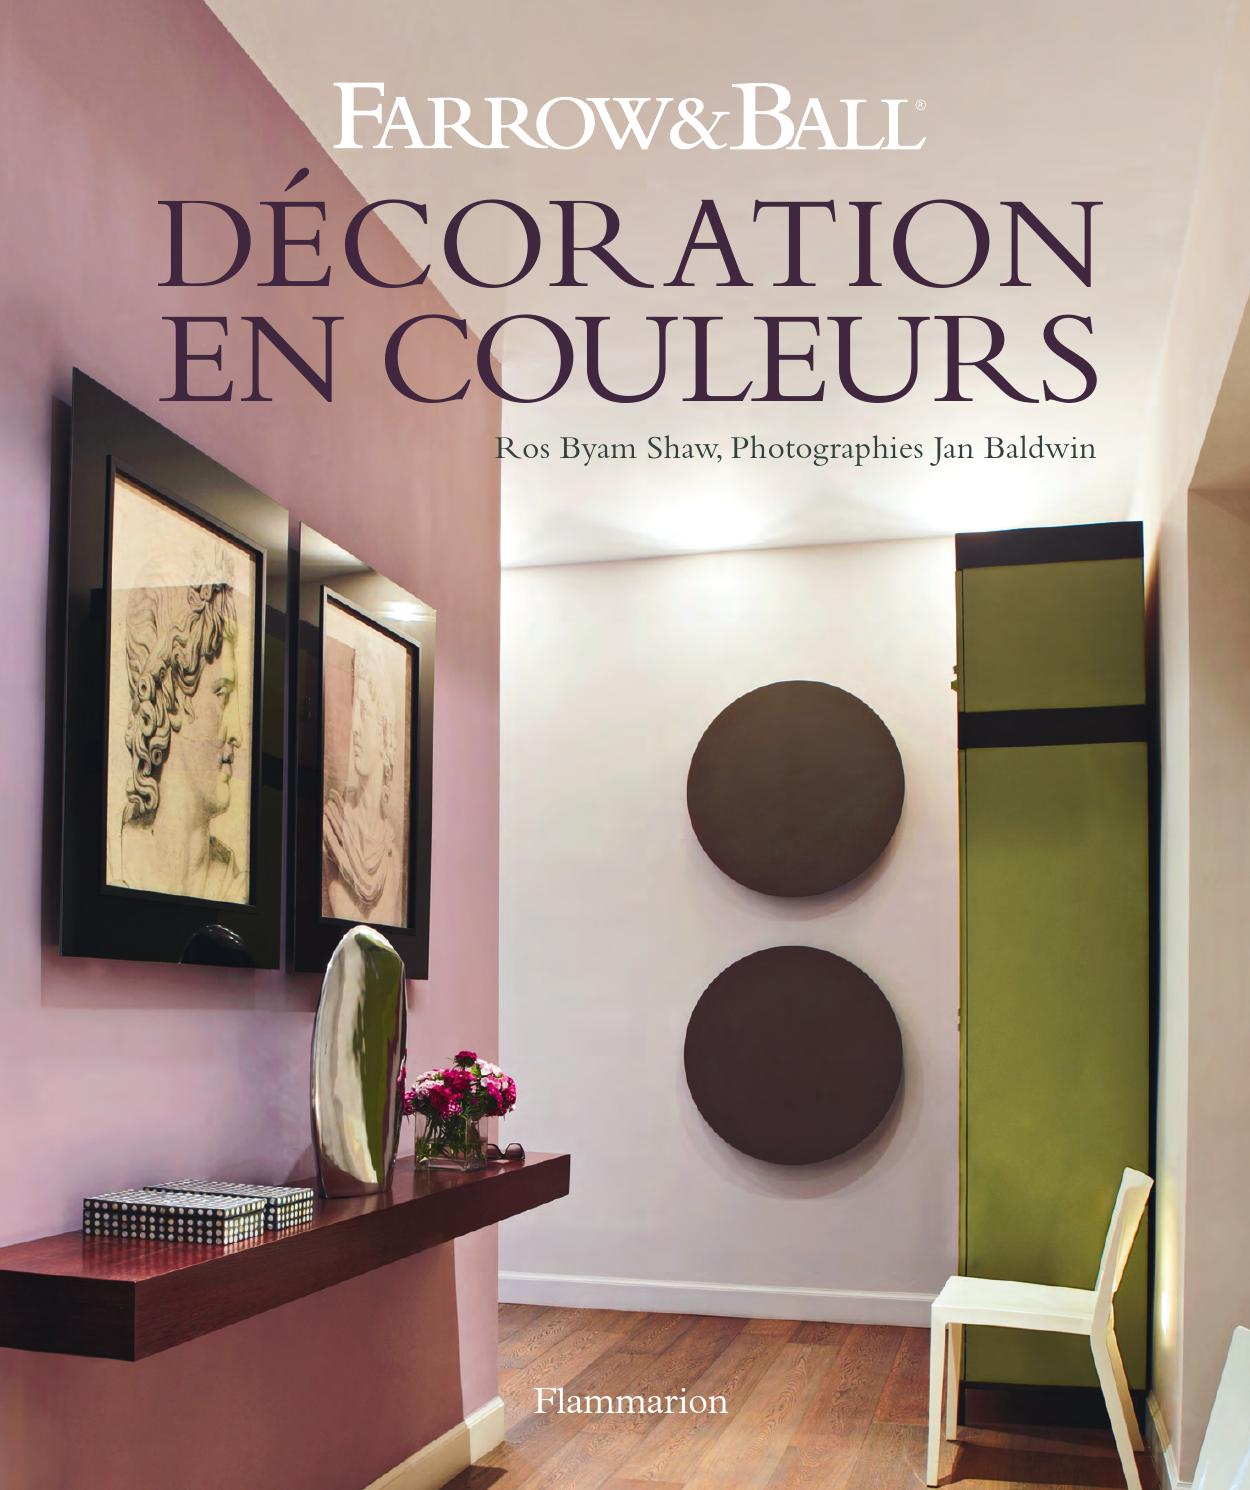 D coration en couleurs by flammarion groupe issuu for Prix peinture farrow and ball